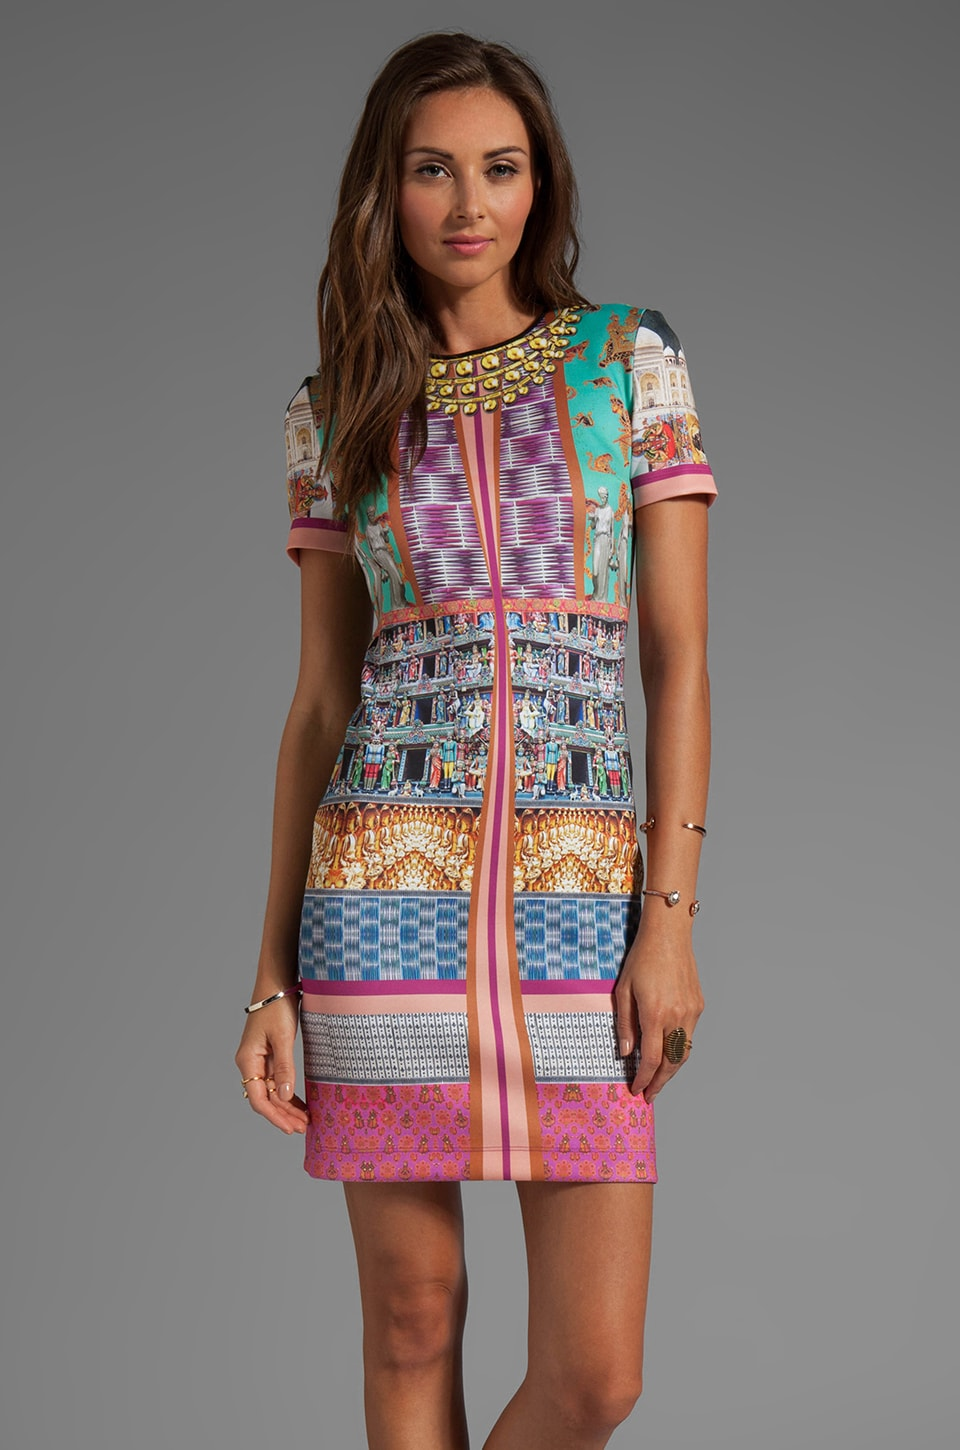 Clover Canyon Taj Mahal Neoprene Dress in Multi